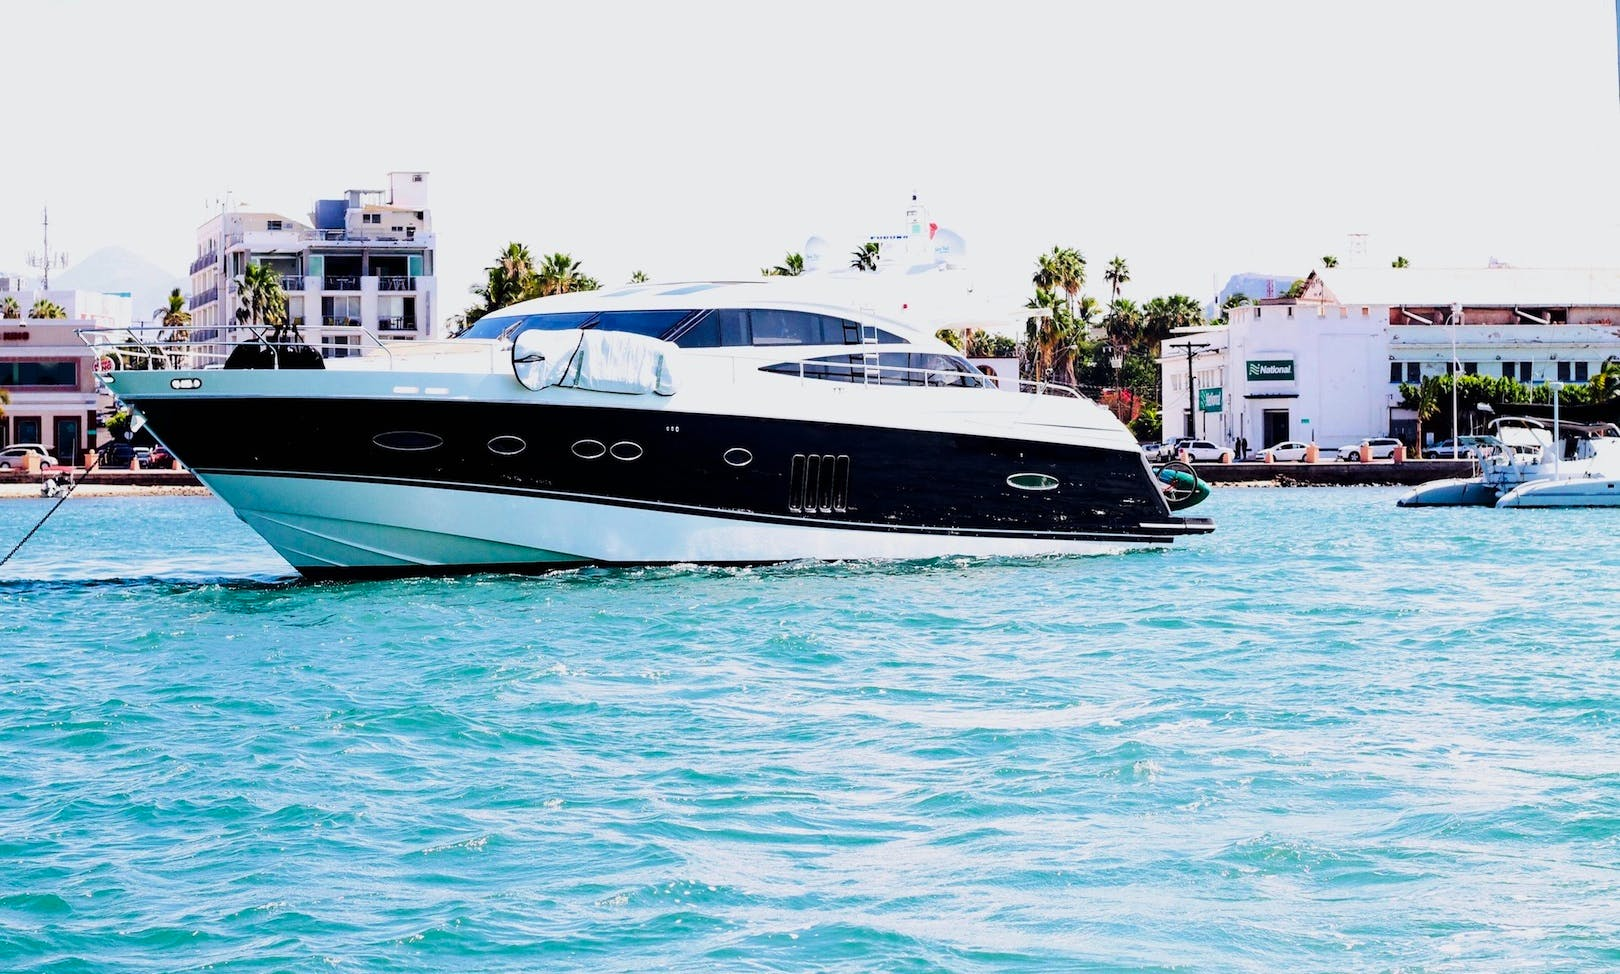 PRINCESS V78'  LA PAZ MEXICO - LUXURY YACHT FOR CRUISING THE SEA OF CORTEZ